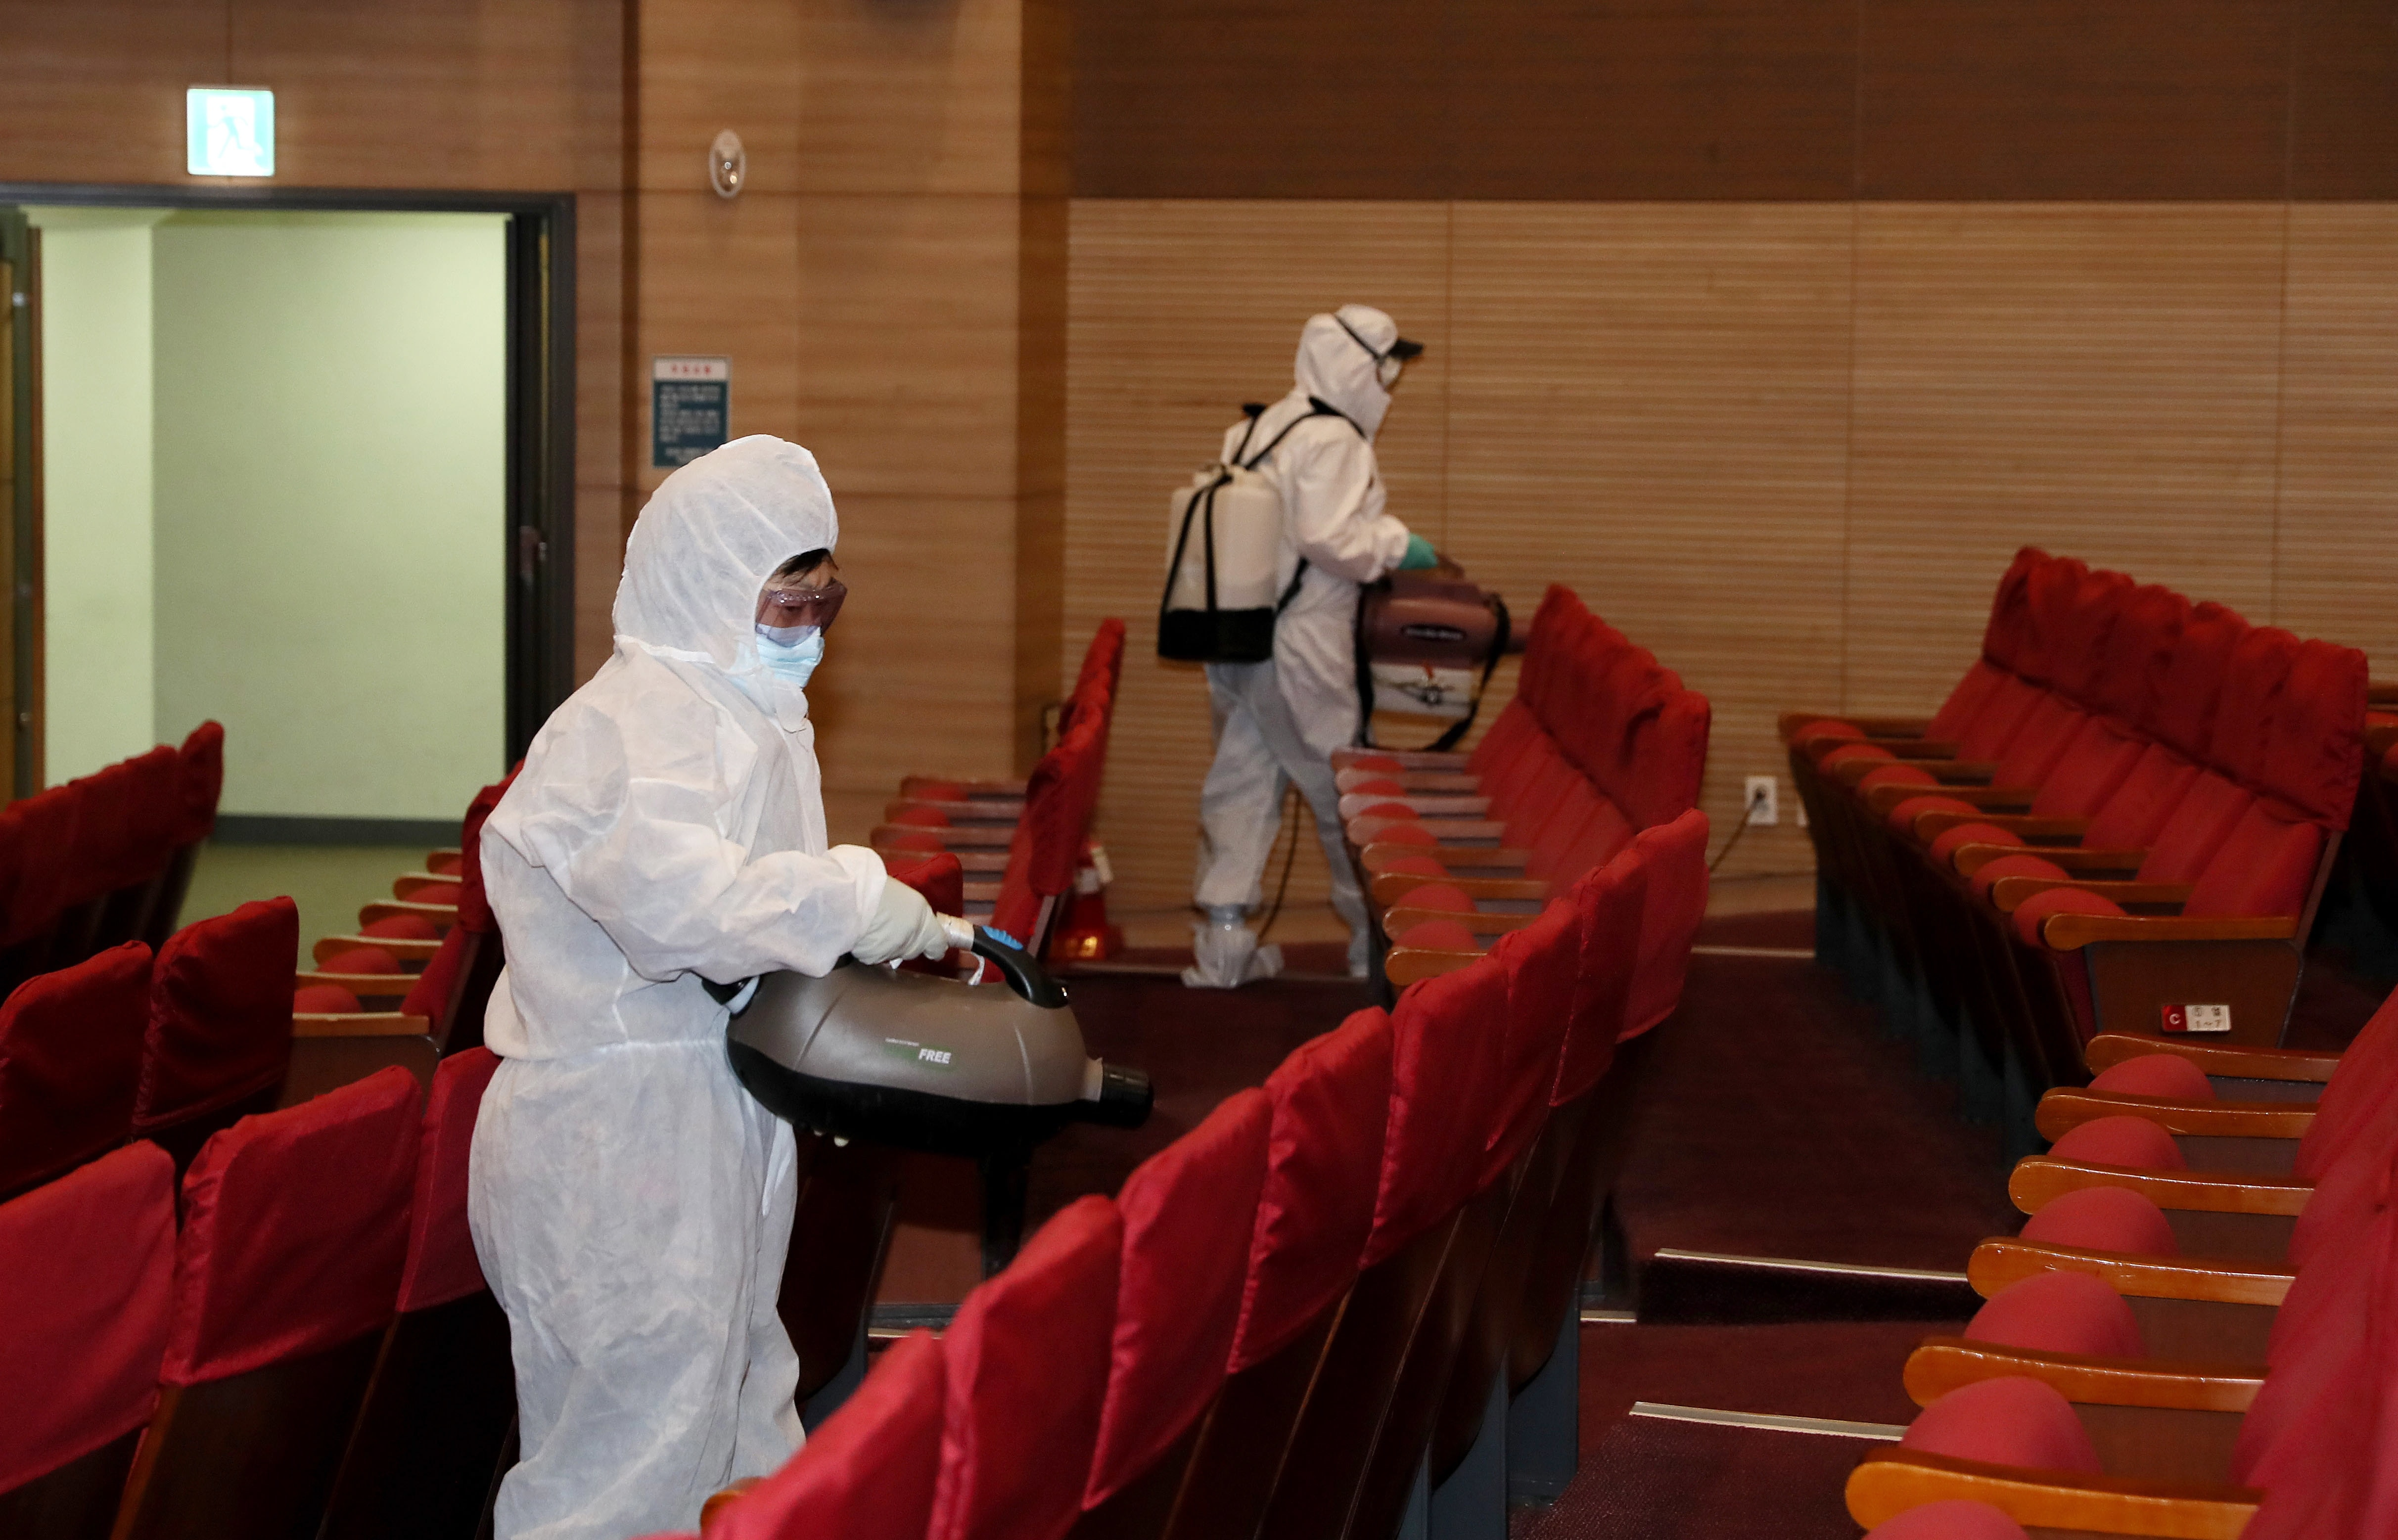 Health workers disinfect the main auditorium at the parliamentary member's office building in the National Assembly in Seoul, South Korea, 24 February 2020.